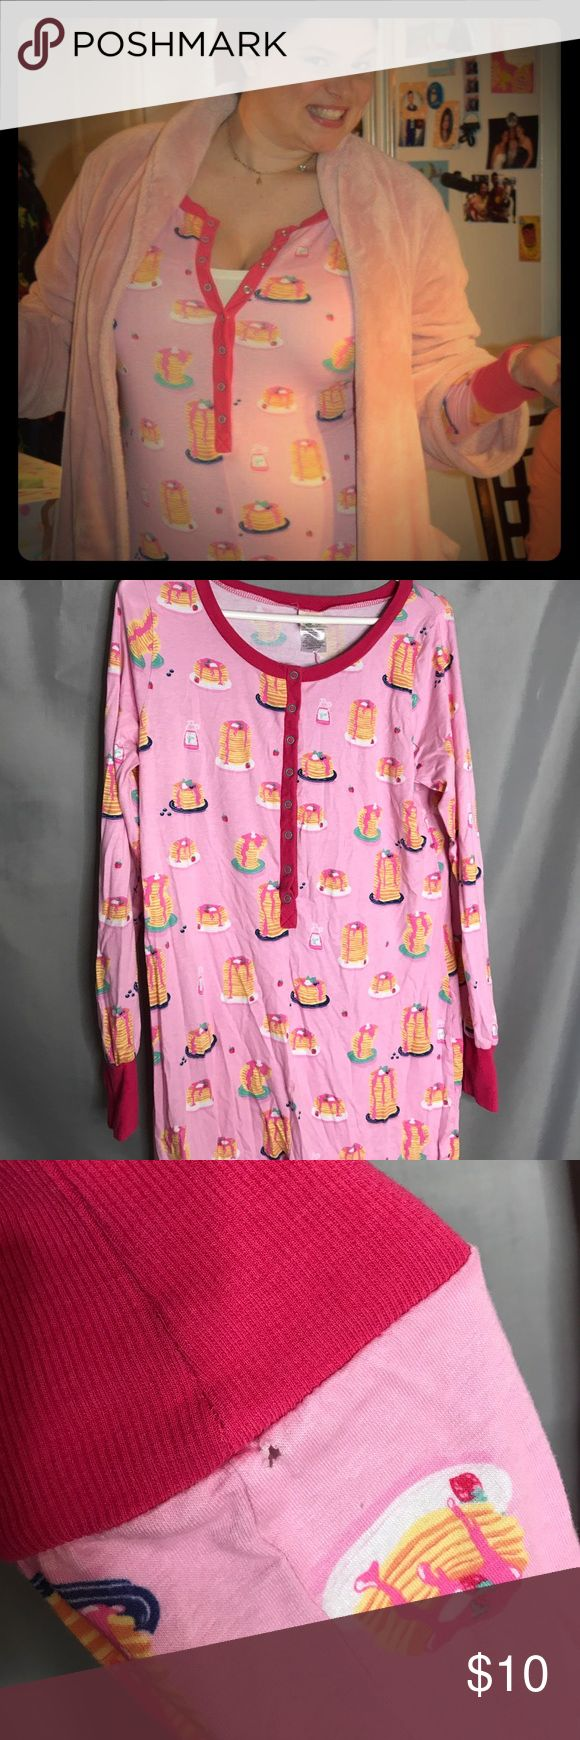 """Woman's Onesie Pajamas with Pancakes Adult Onesie pajamas with pancakes! Bought for a kid's """"Pancakes and Pajamas"""" birthday party and washed/worn once. There is a small hole at the right ankle (in photos) Nite Nite Intimates & Sleepwear Pajamas"""